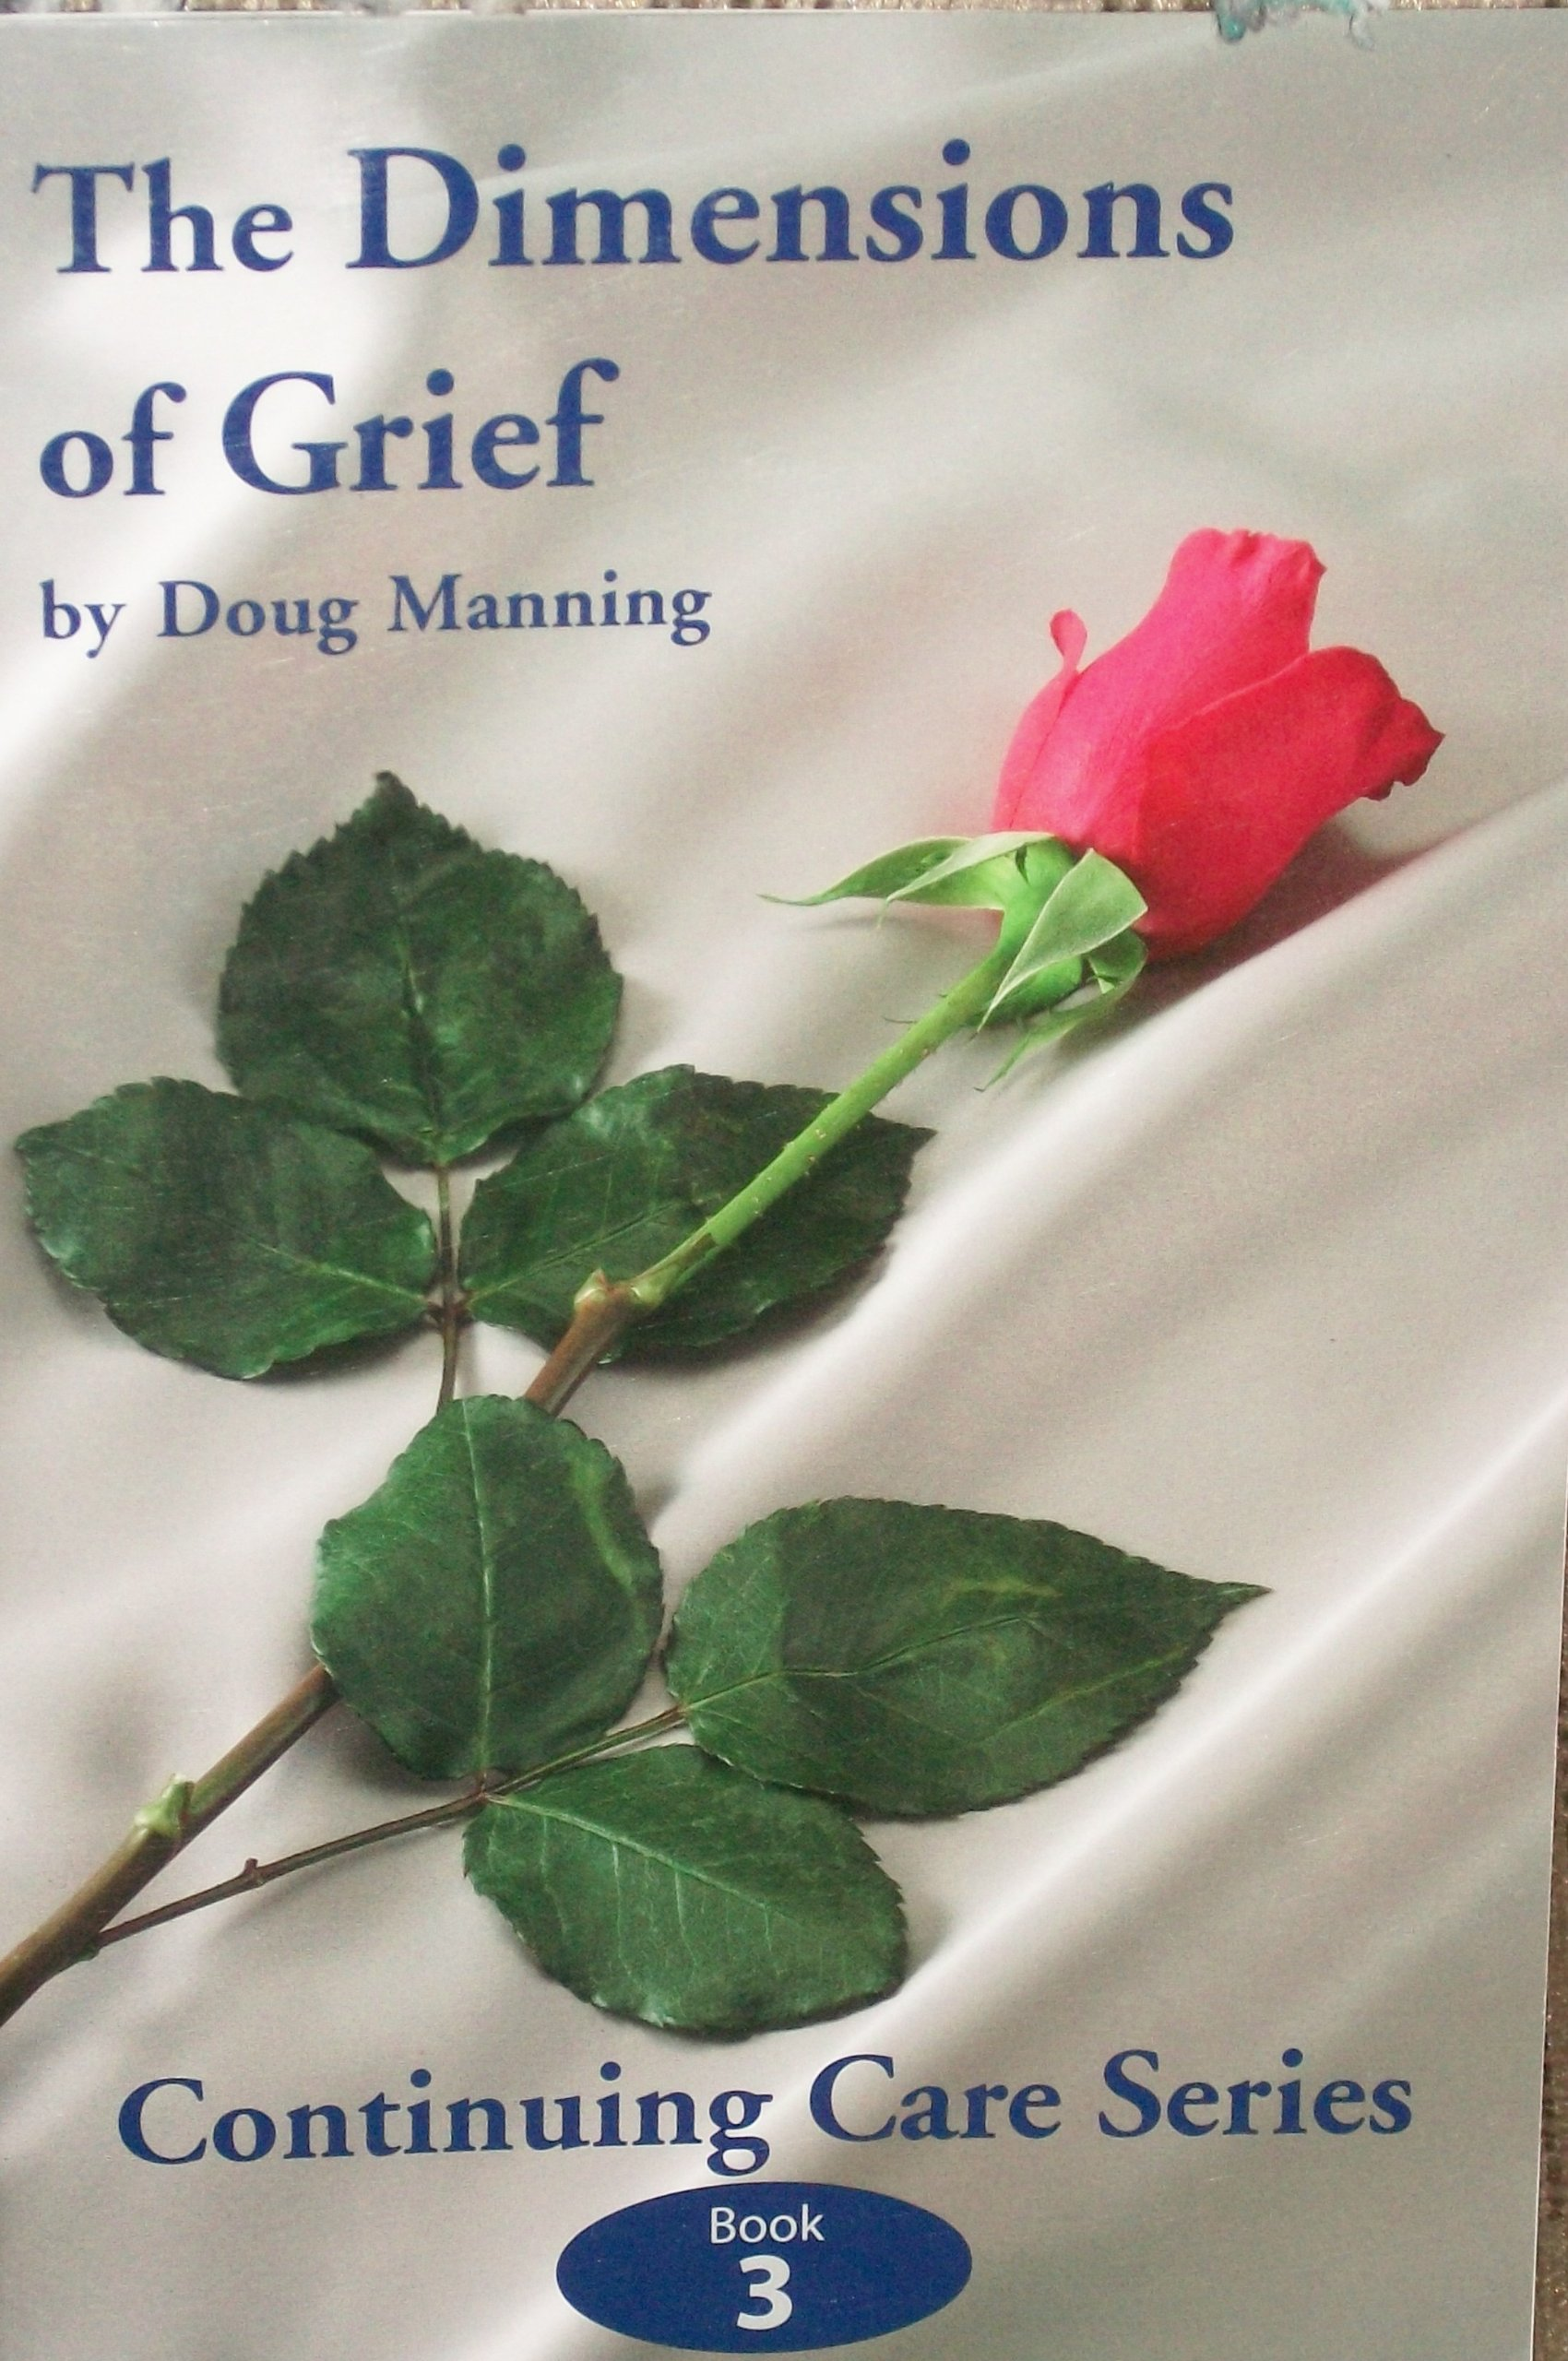 The Dimensions of Grief-Book 3 PDF